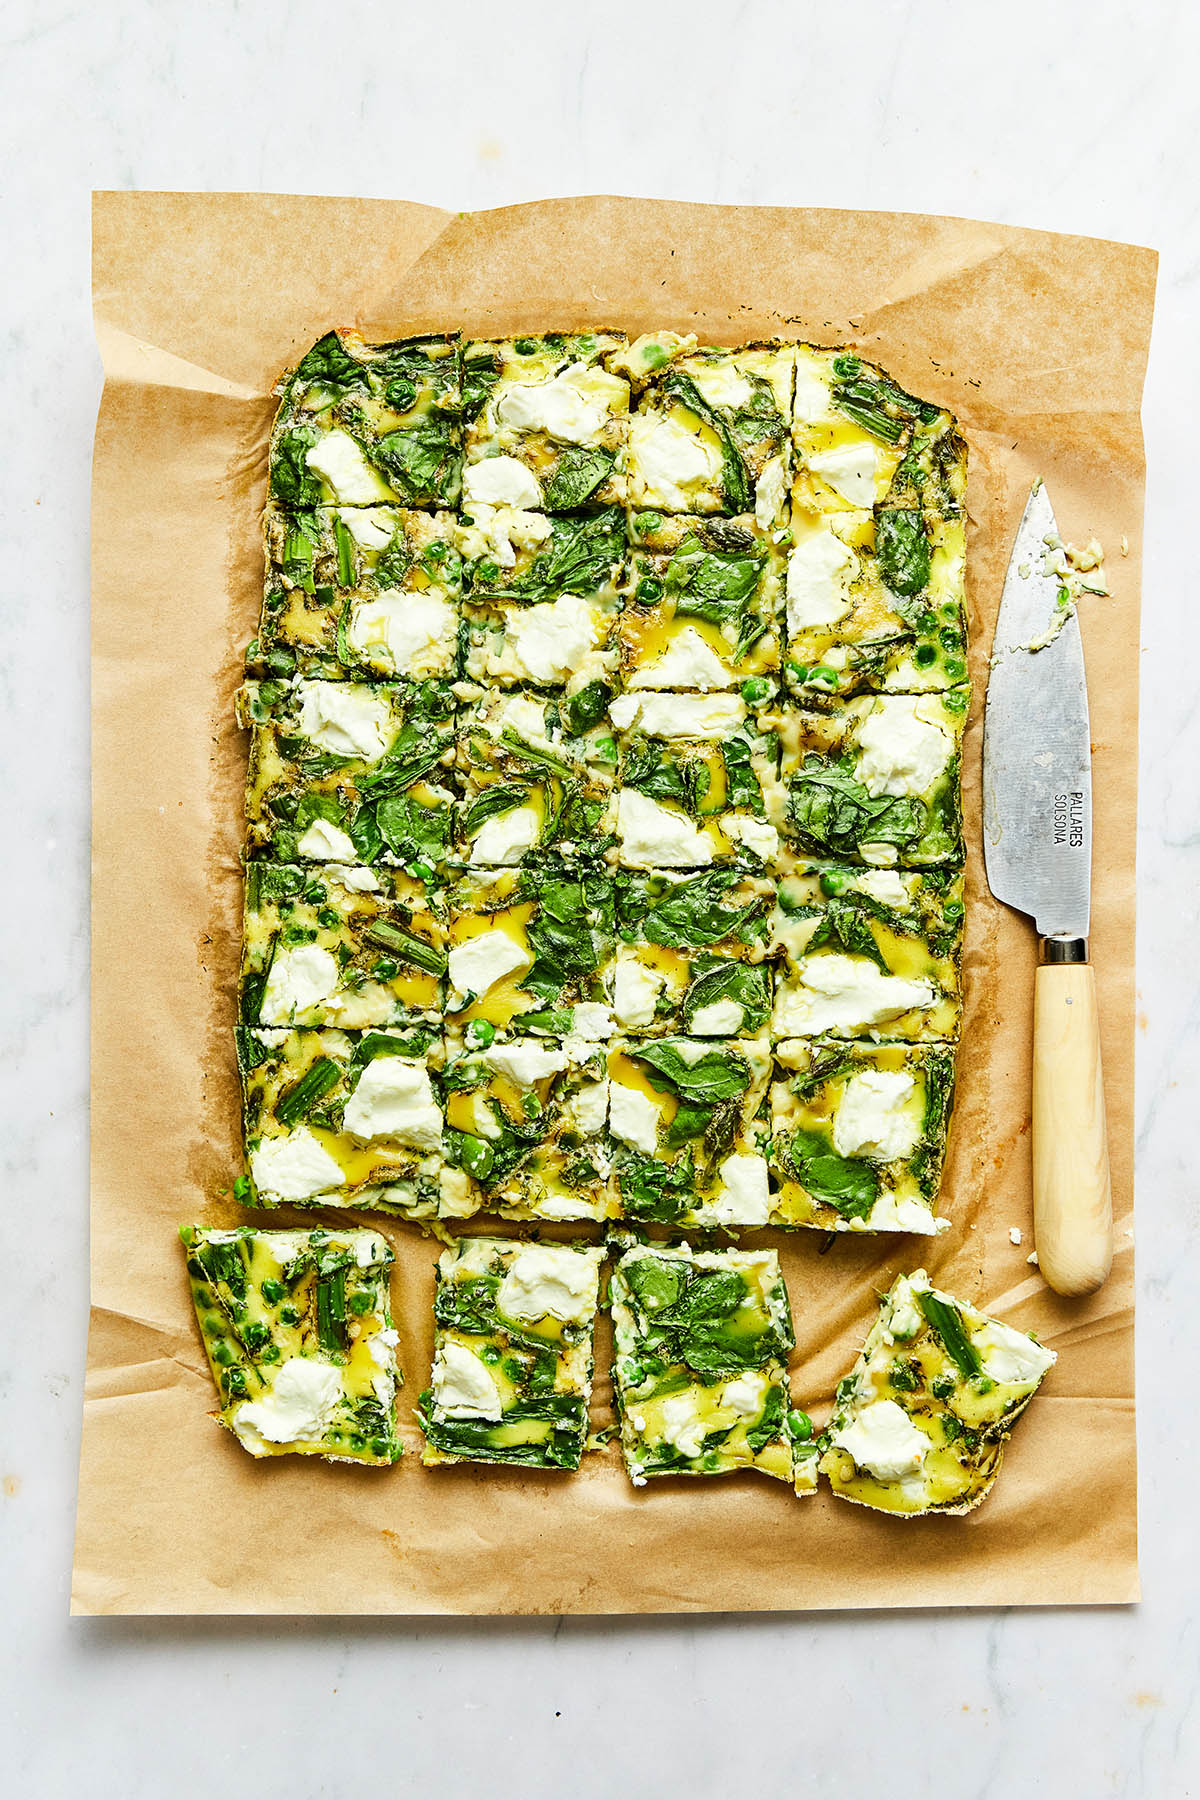 A sliced baked asparagus frittata on parchment paper with a knife alongside the paper.